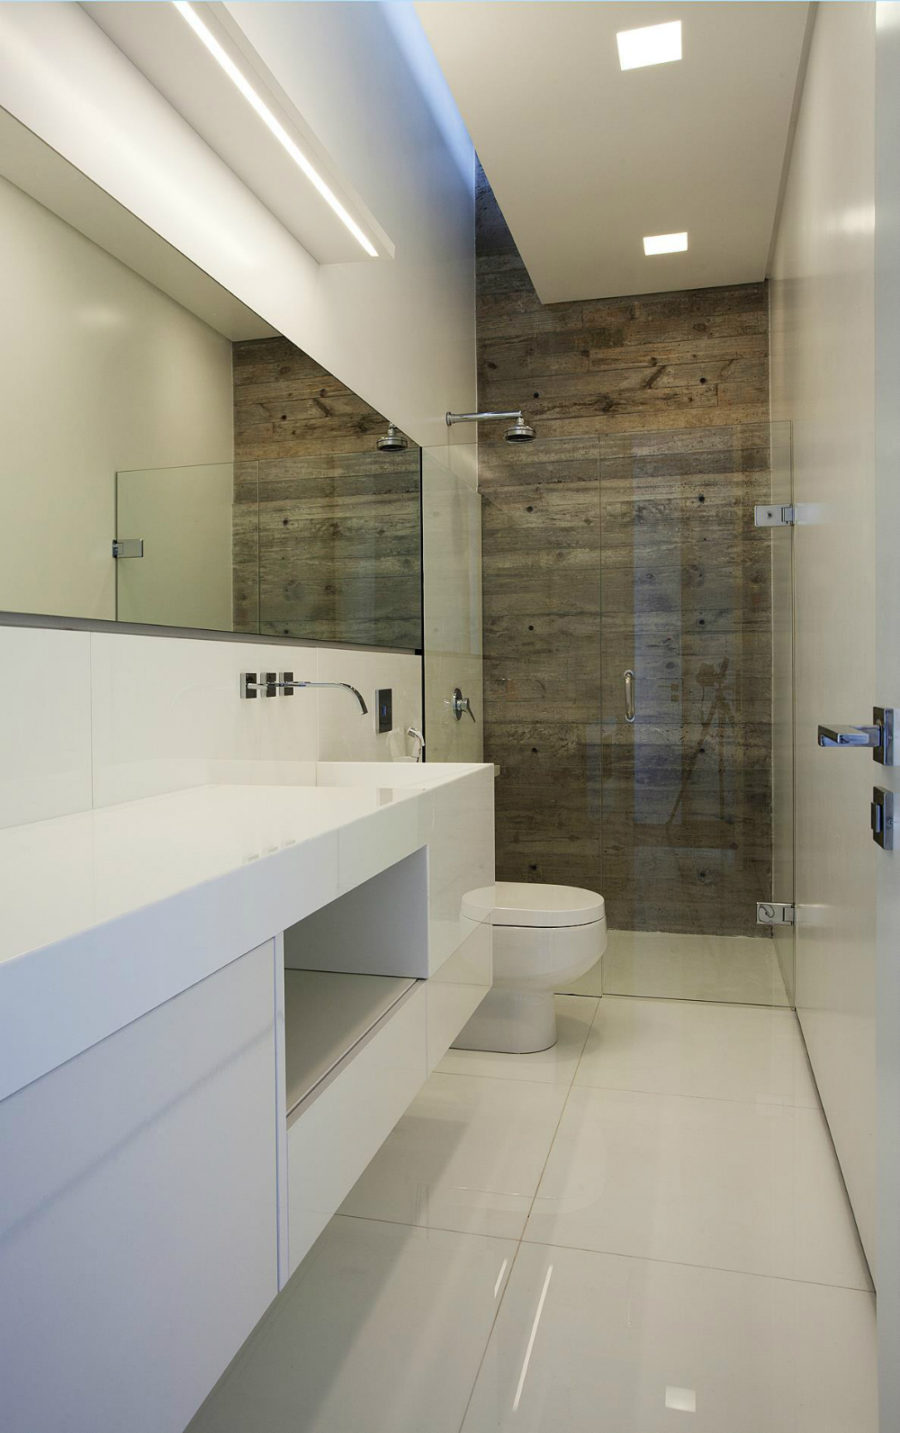 Small bathroom at LM Residence in-Curitiba